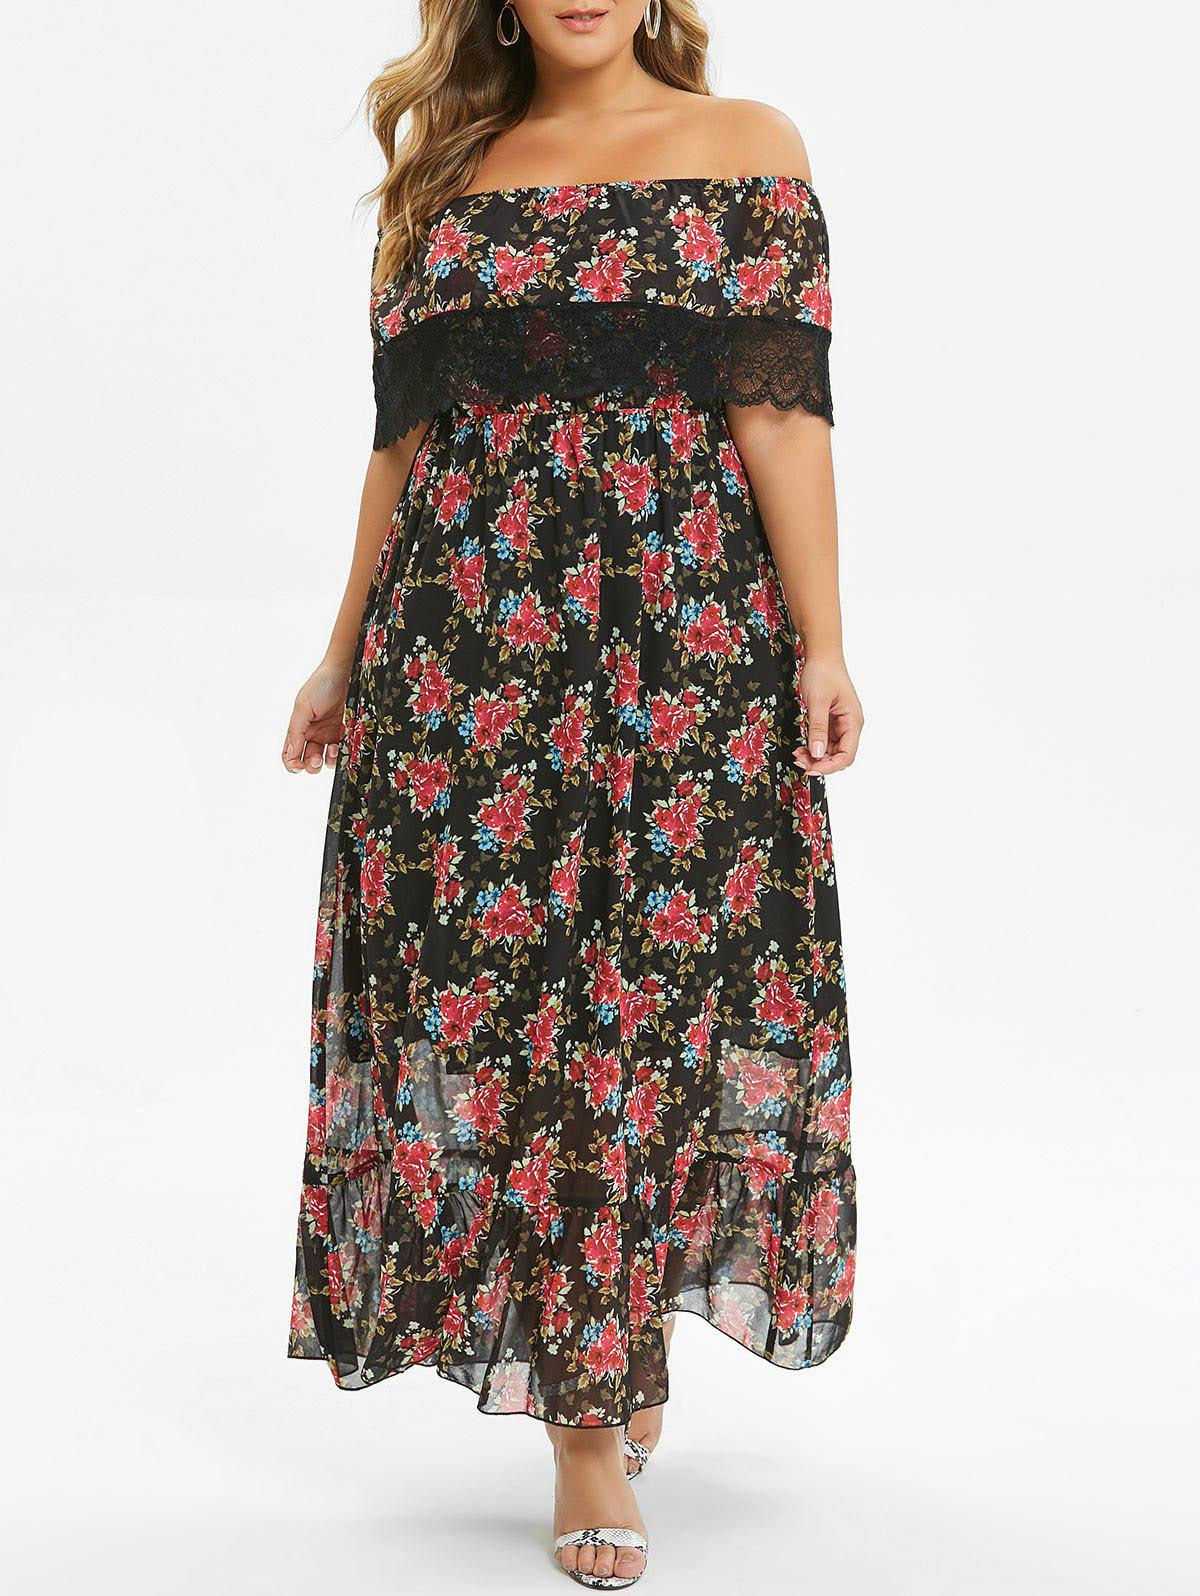 Plus Size Floral Print Ruffled Off The Shoulder Maxi Dress - BLACK 5X